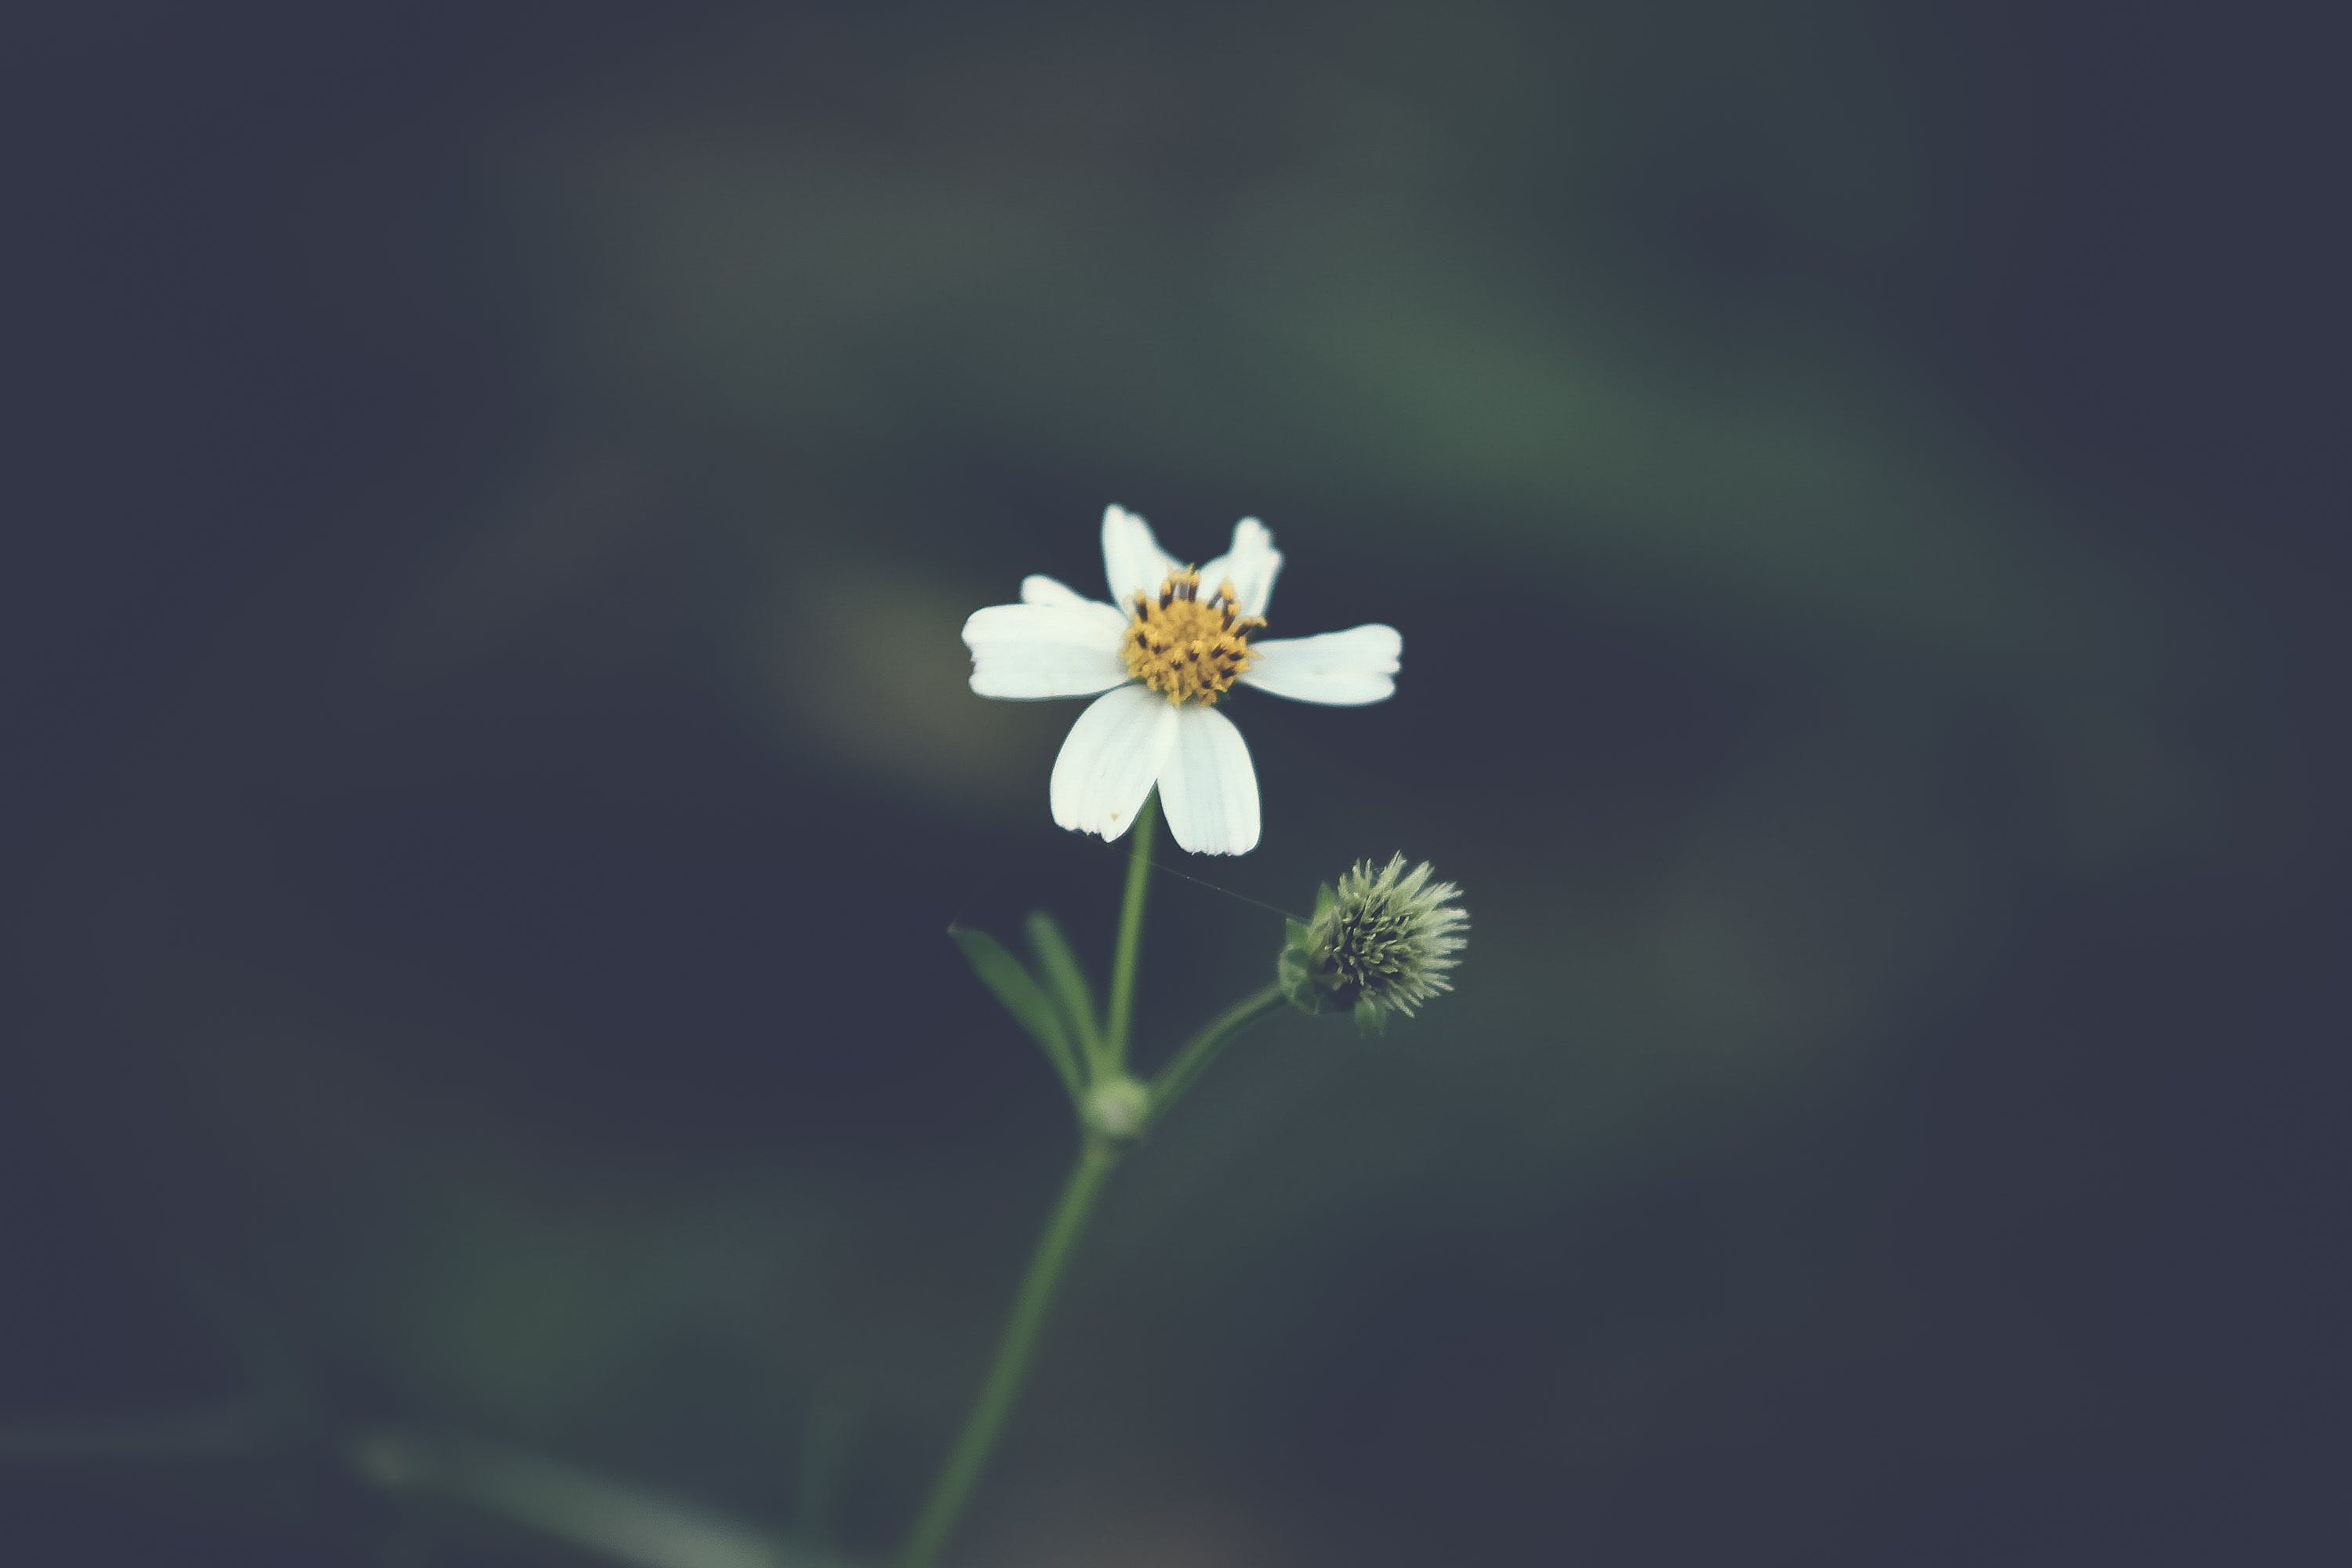 Free stock photo of garden, petals, plant, blur